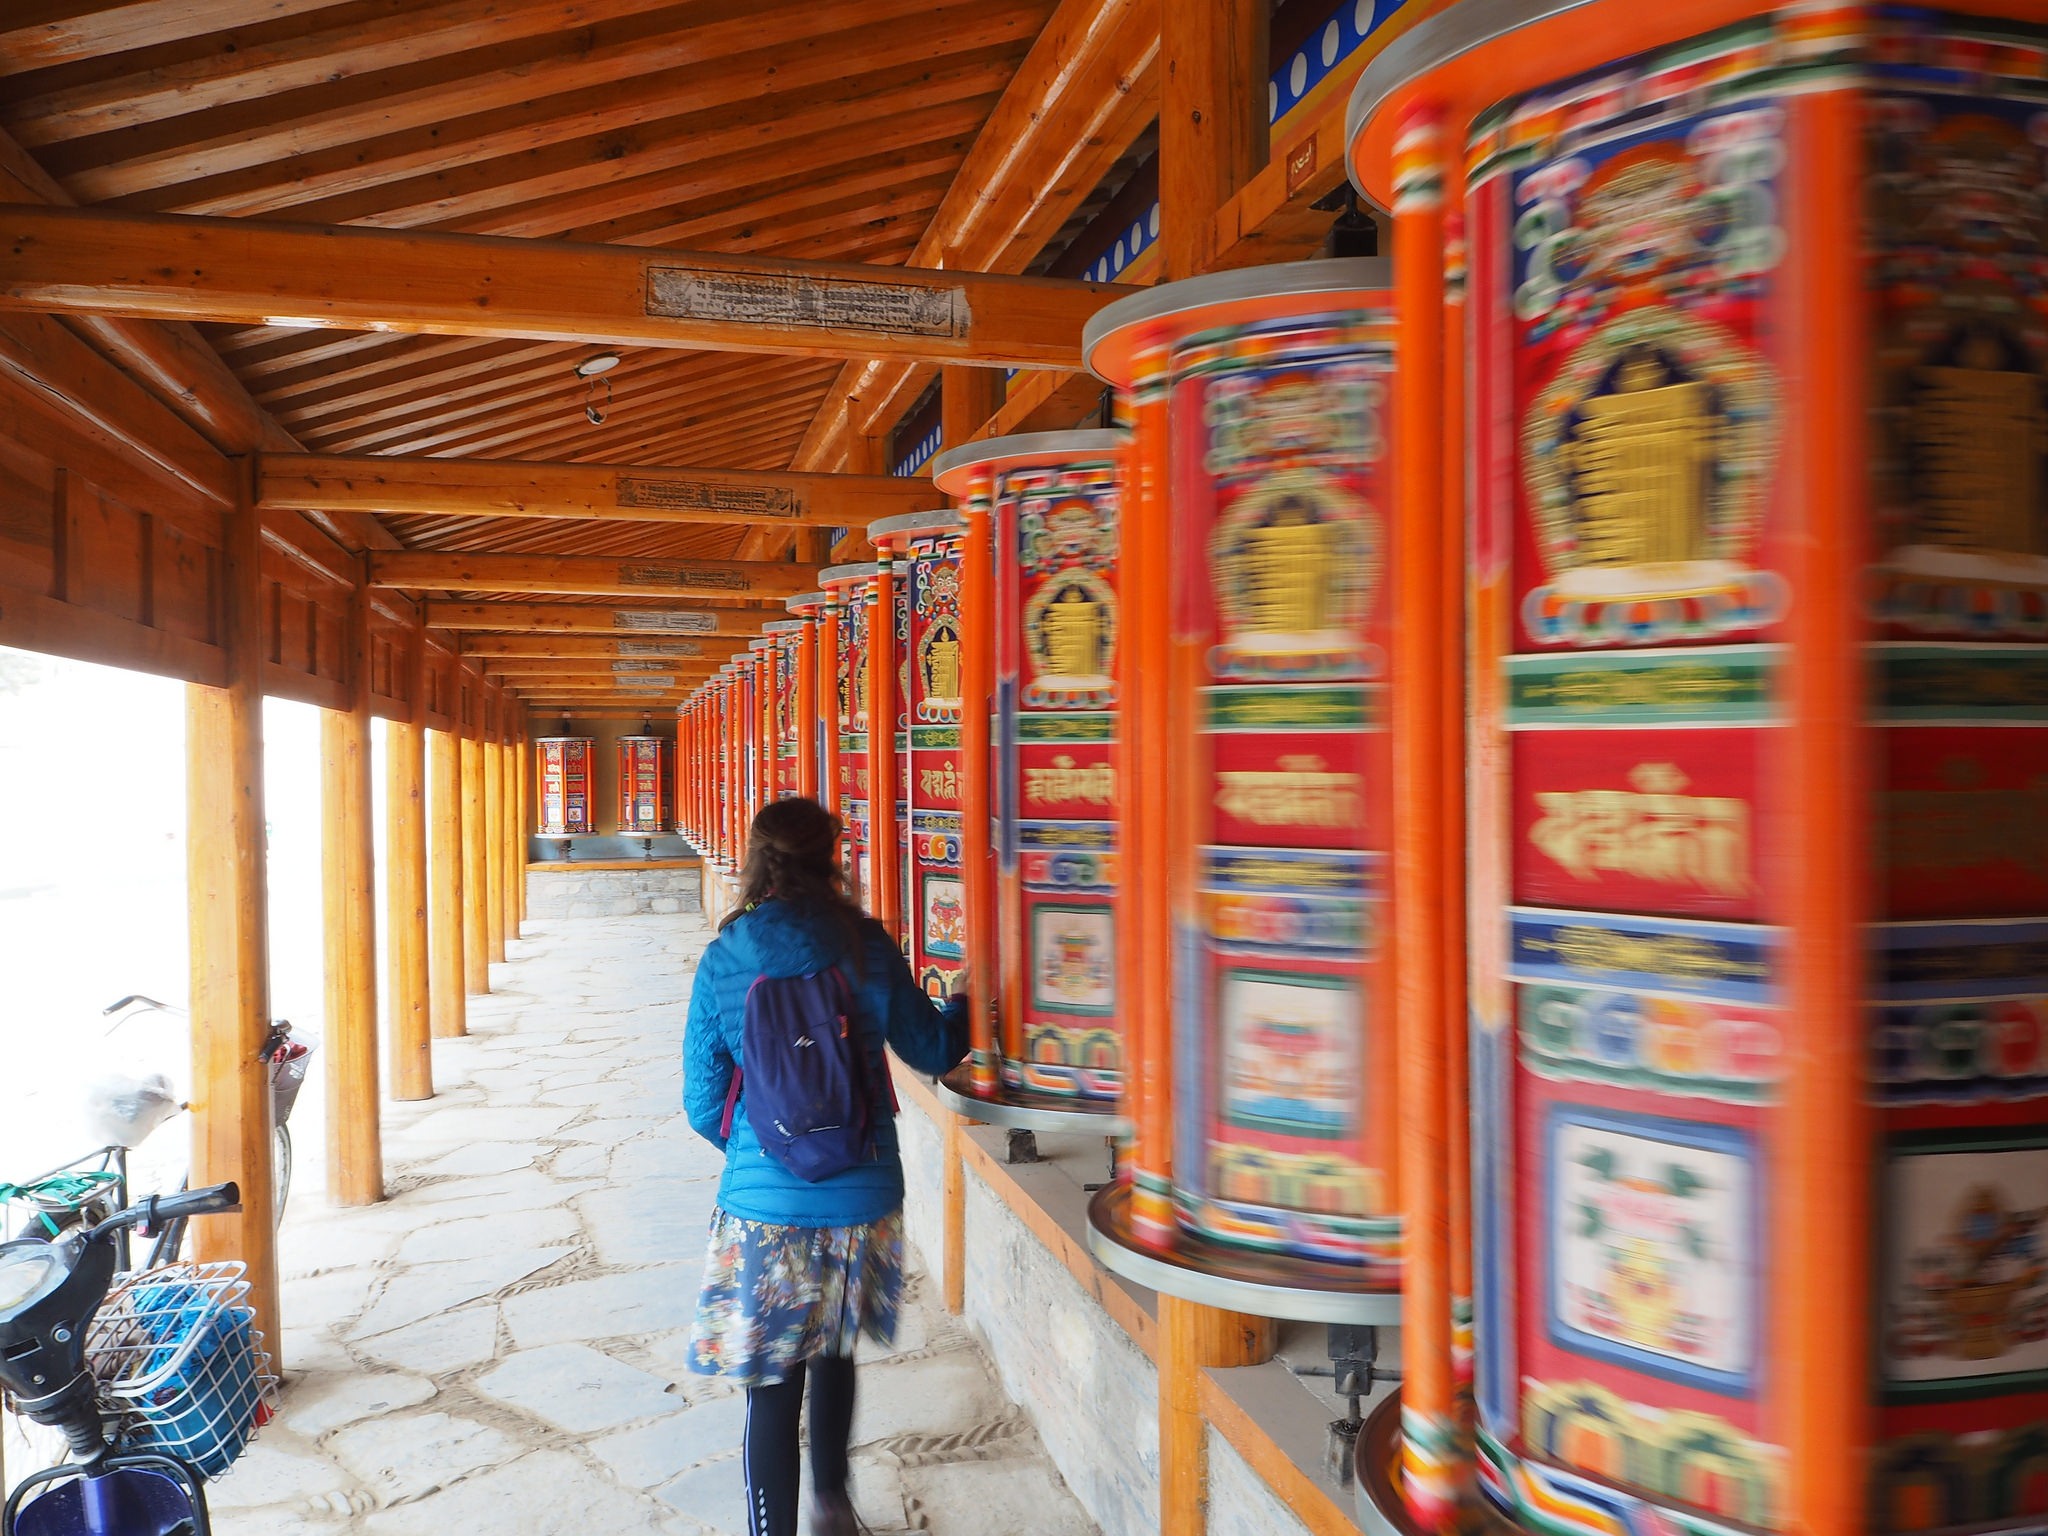 Xiahe, not quite Tibet